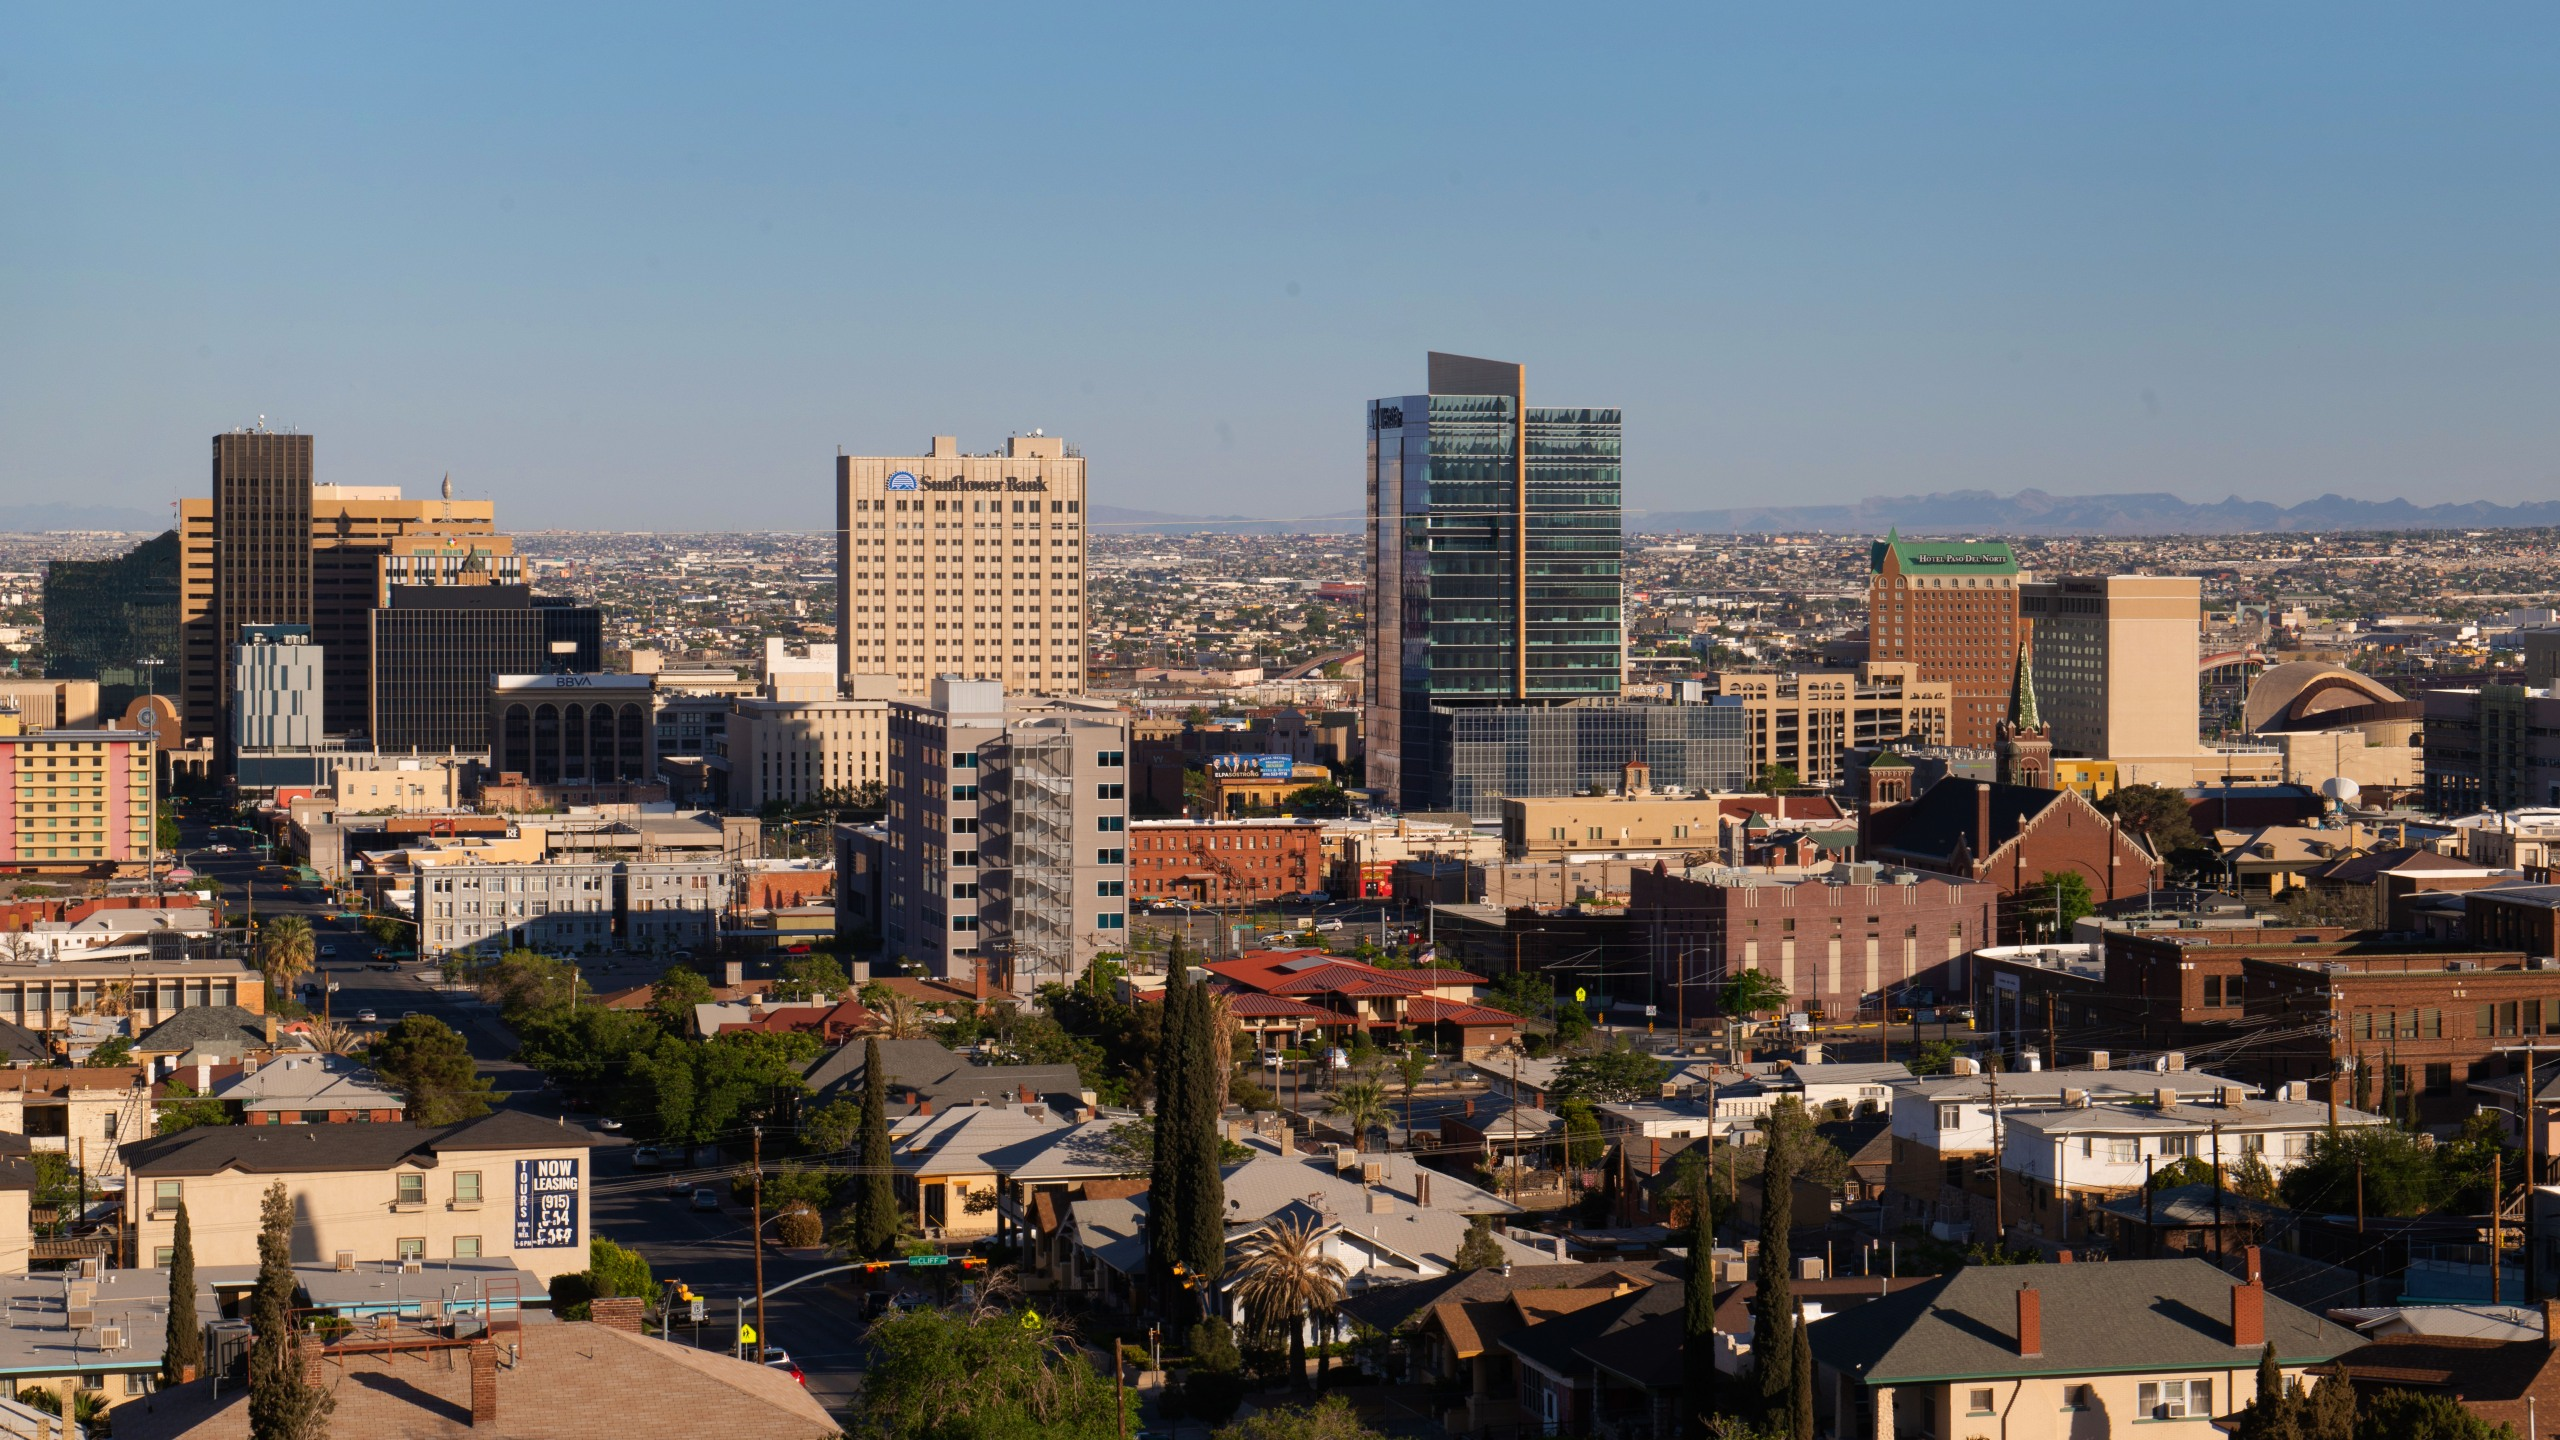 Skyline of the city of El Paso.